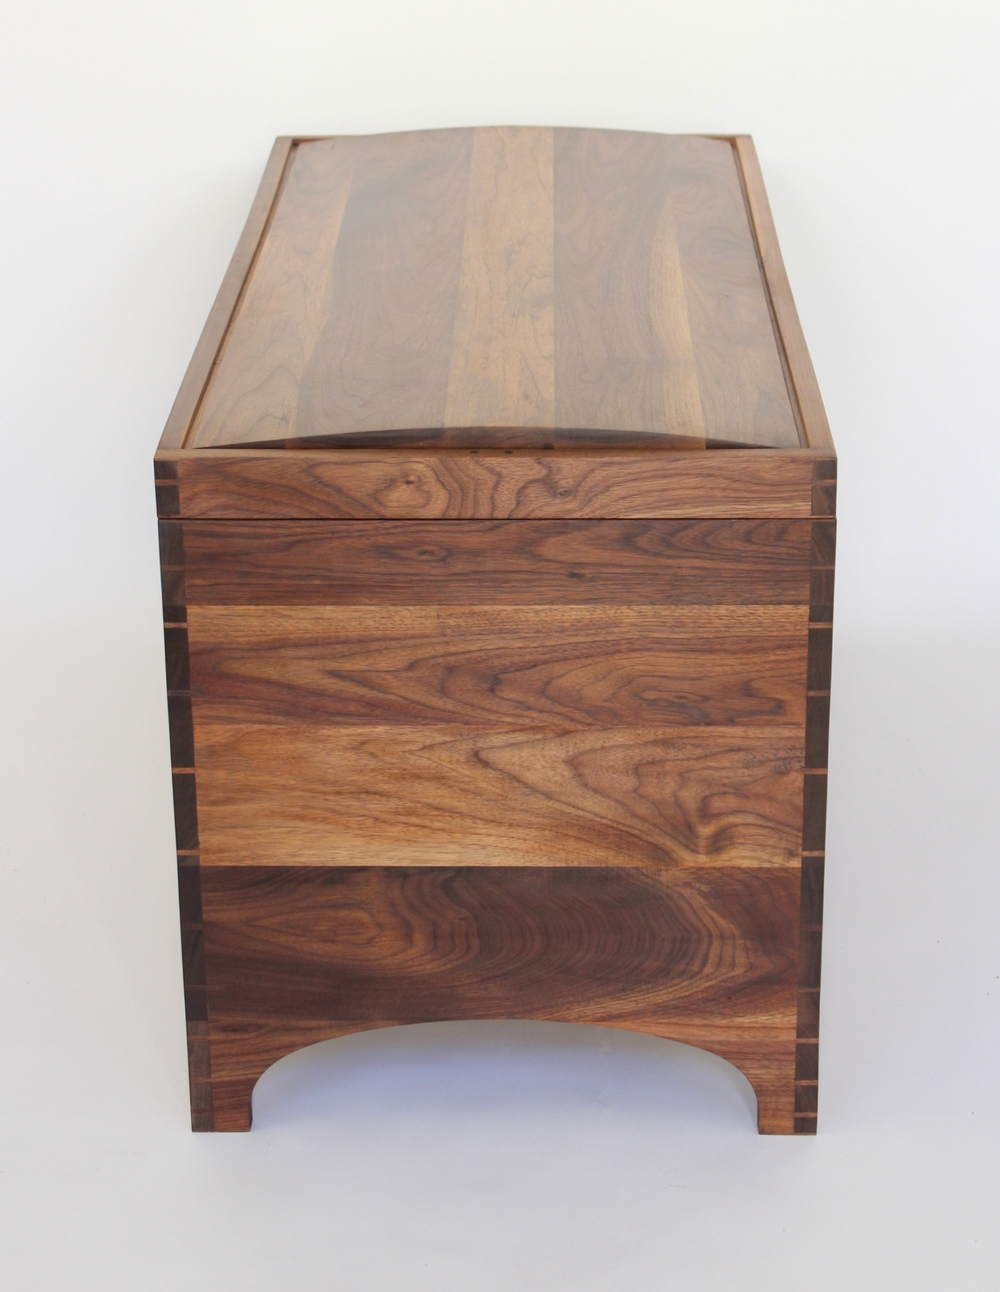 The side profile of the chest shows the graduated dovetails, as well as the arc of the panel top and the leg cutaway